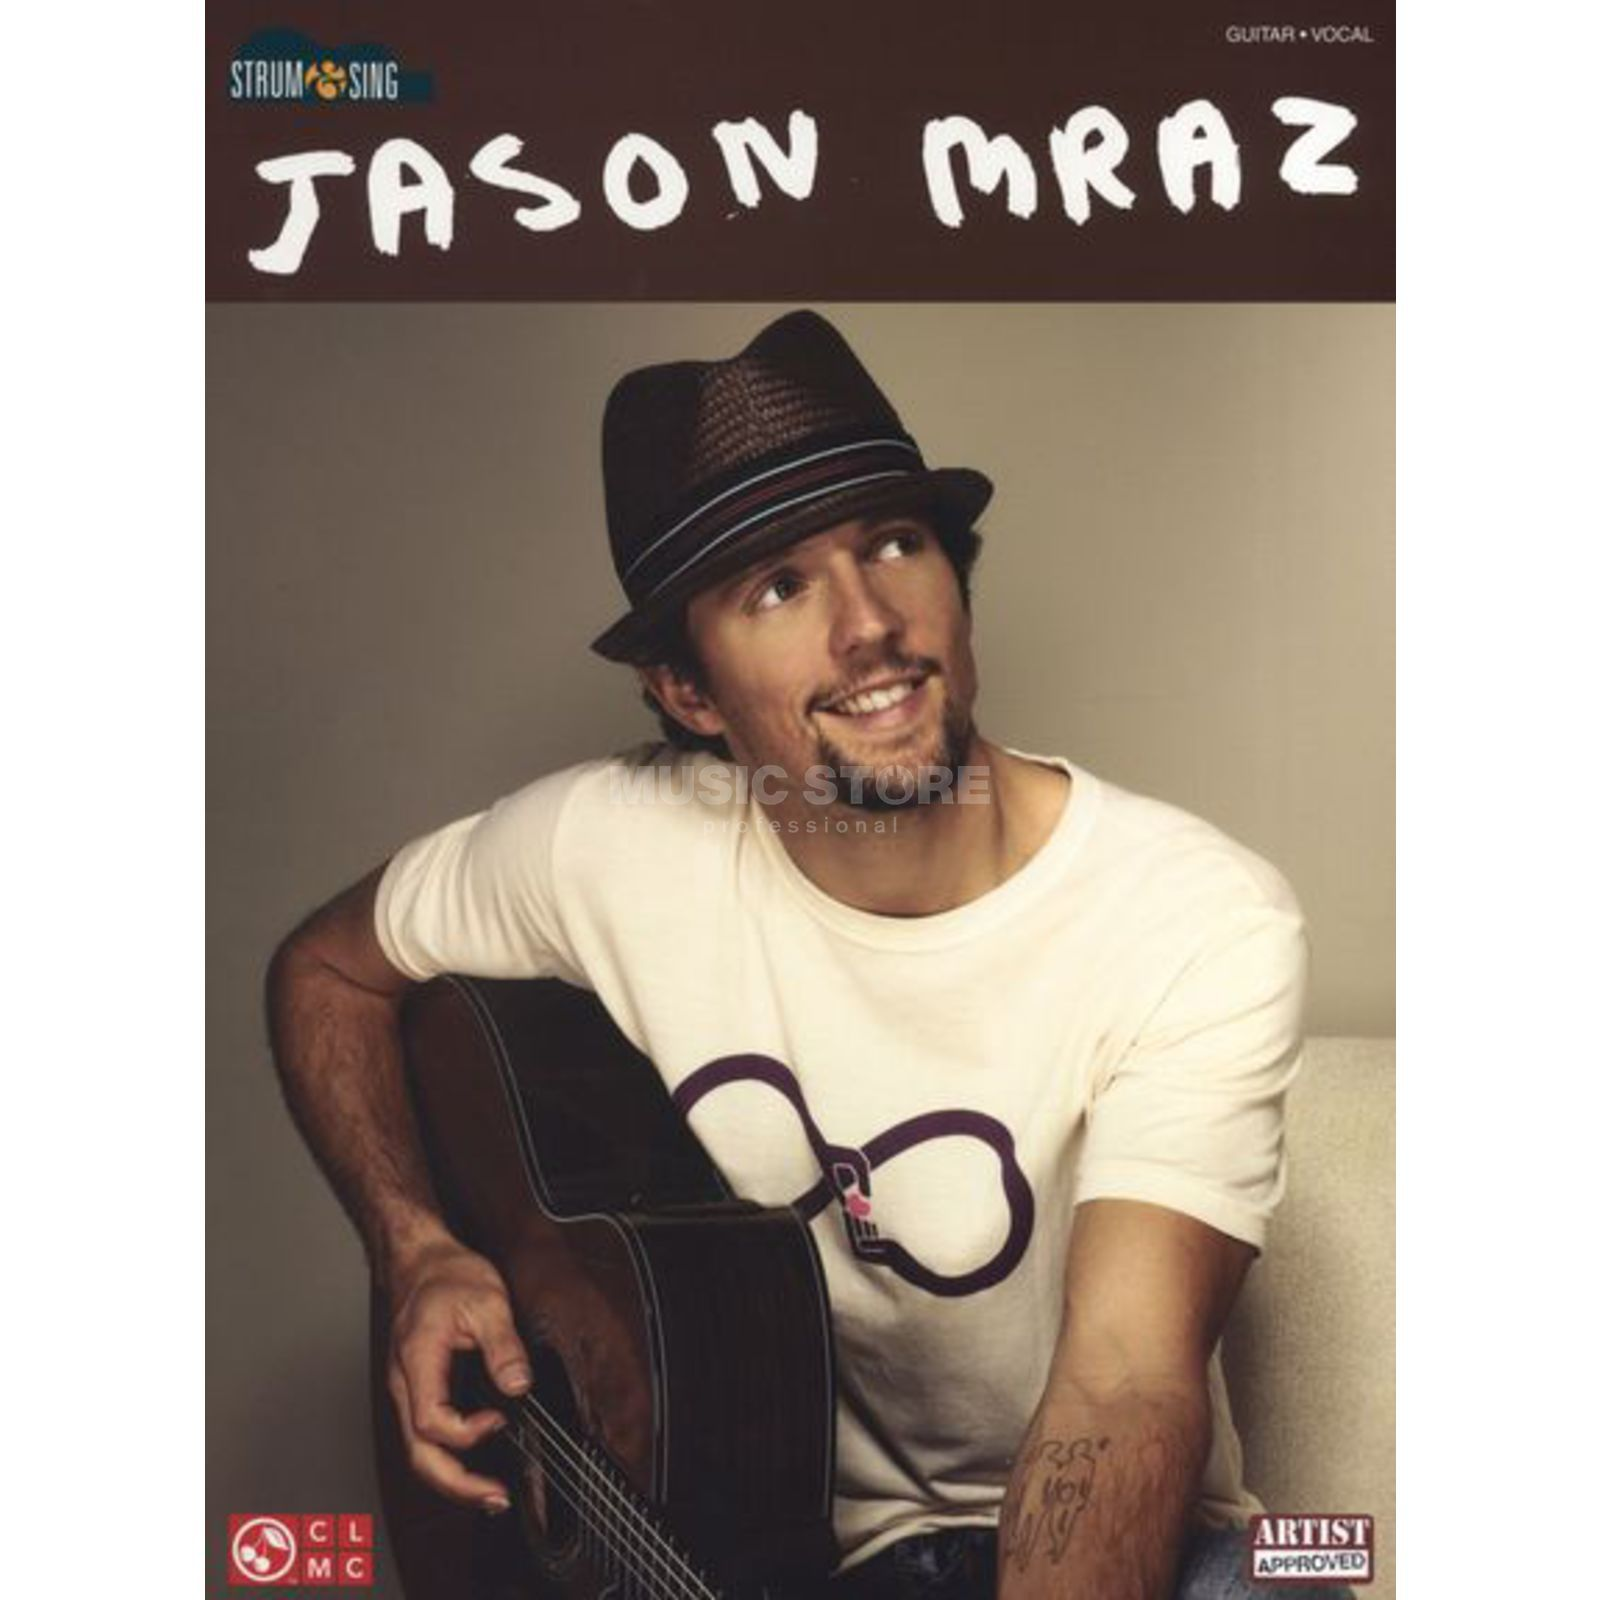 Hal Leonard Jason Mraz: Strum And Sing Produktbild